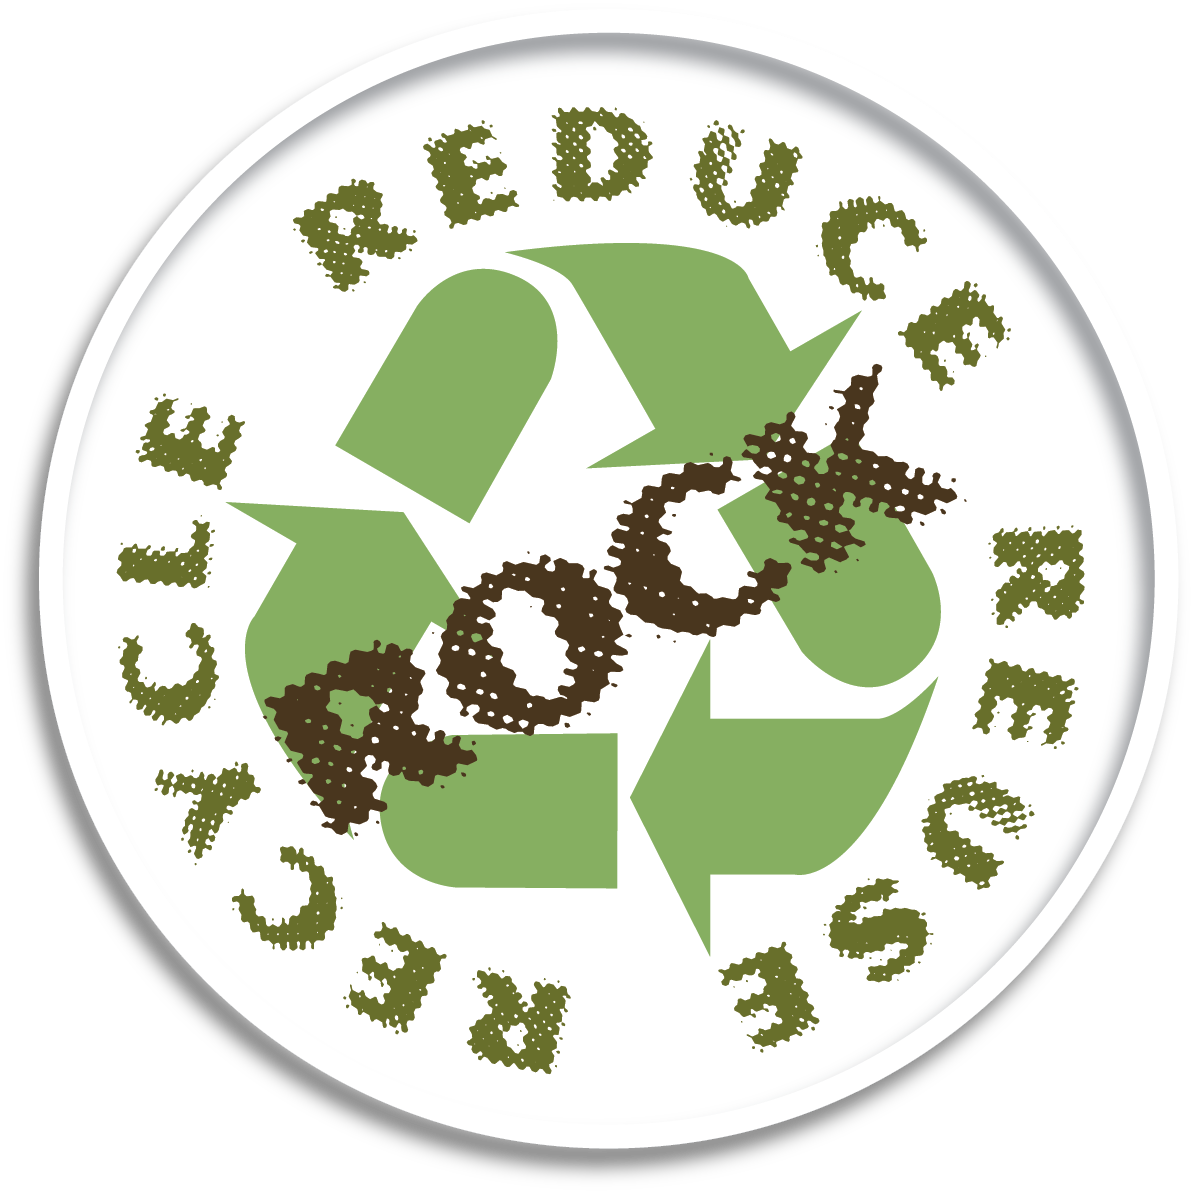 Earth Day Logo: Recycle, Reduce, Reuse, Rock